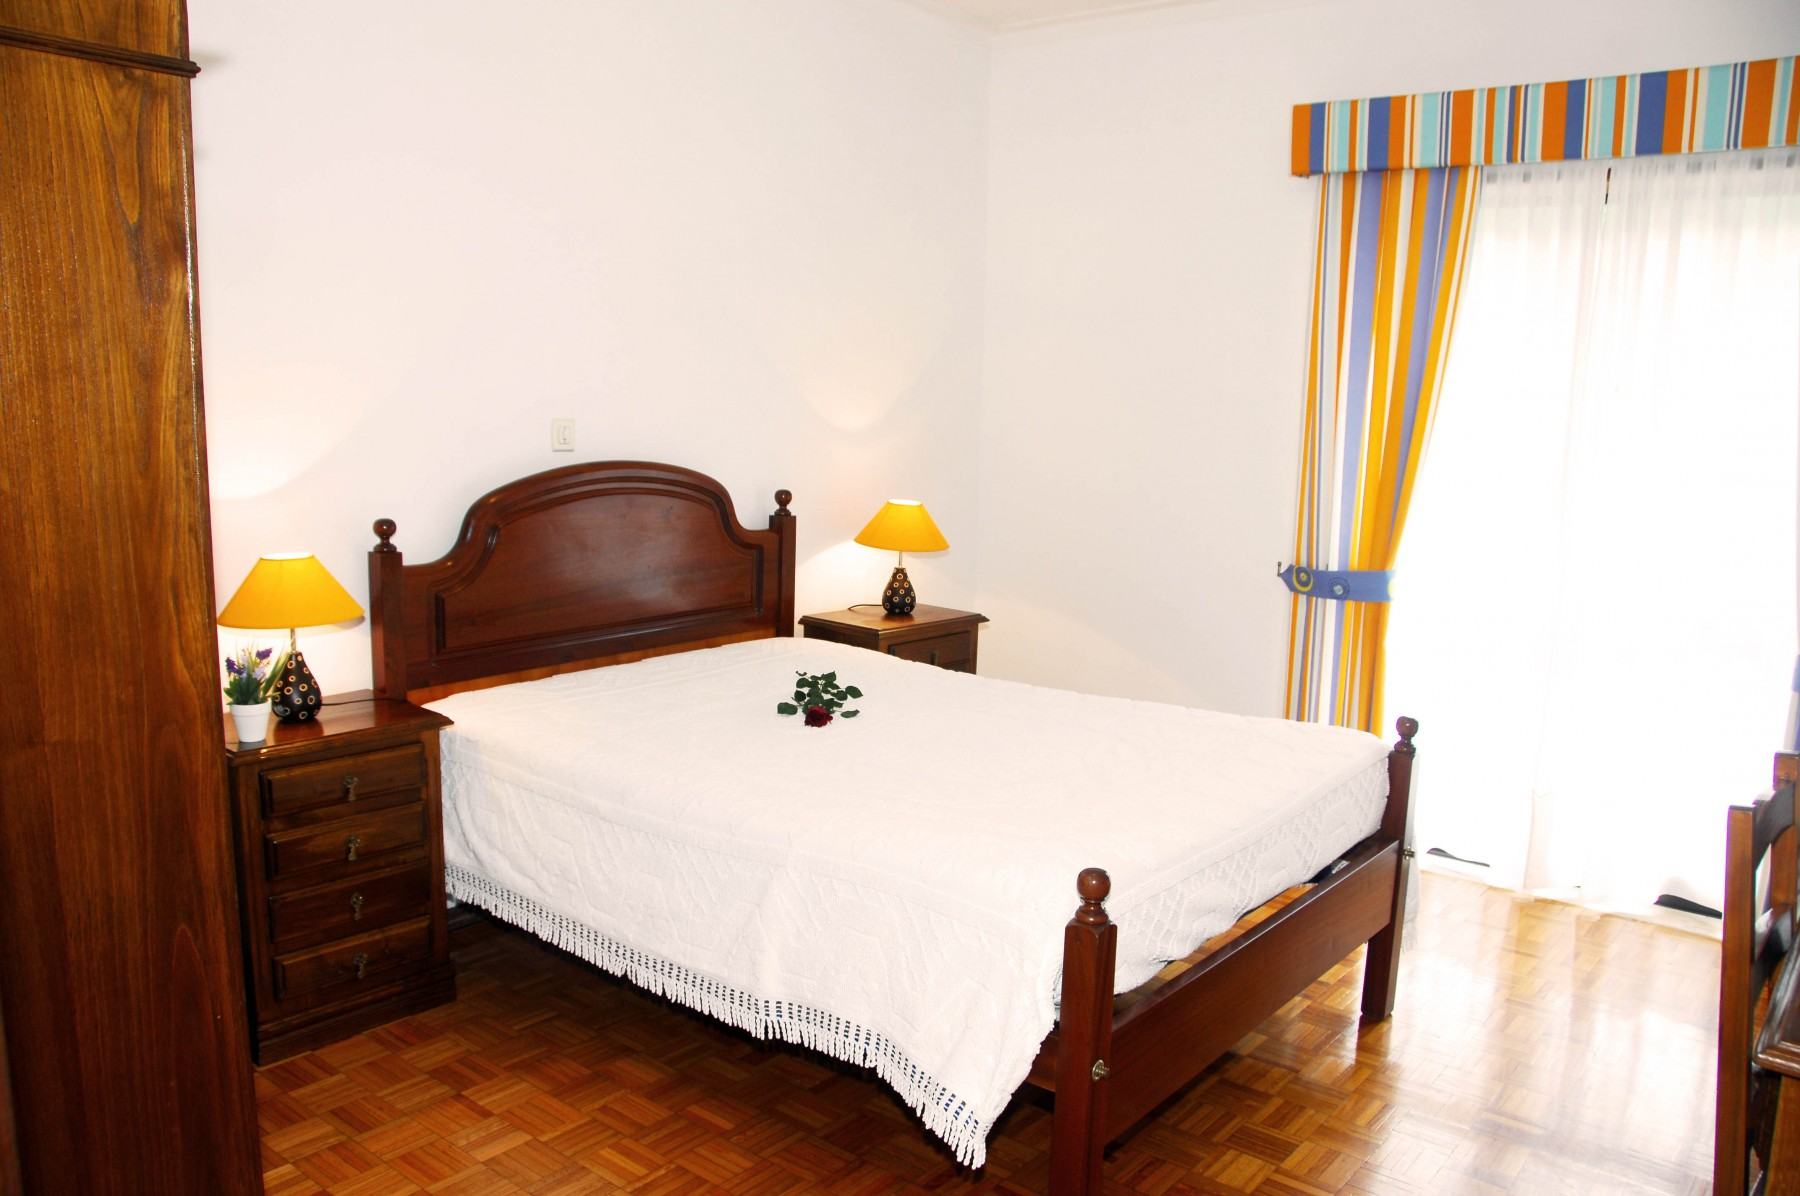 ... Bed and Breakfast in Gers - Gers Guest House - Q. Single/Duplo ...